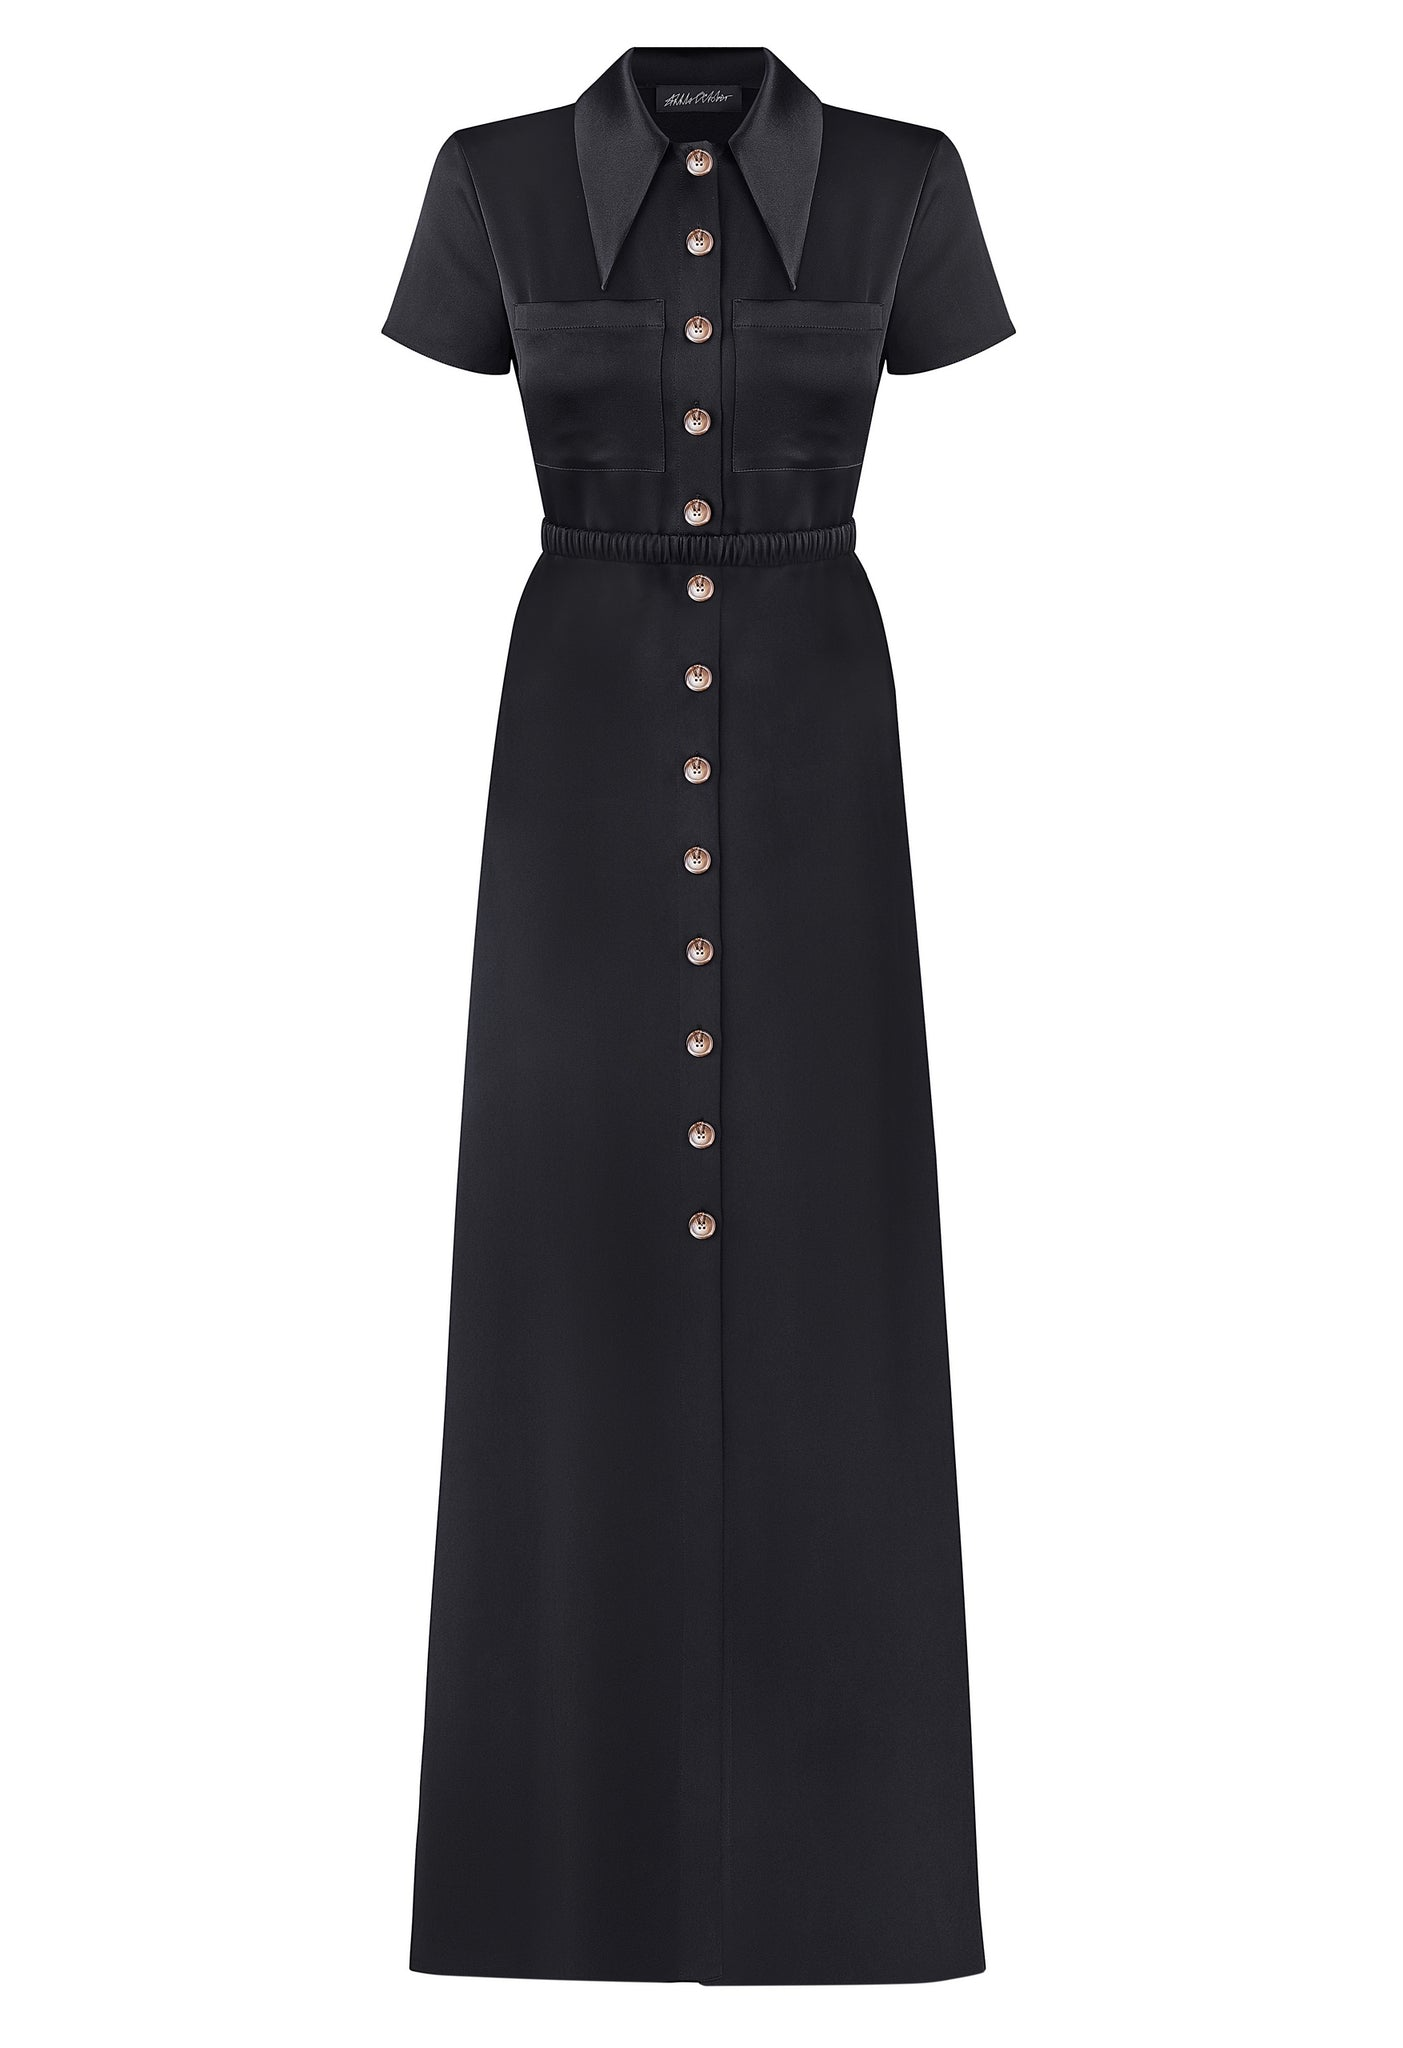 'Monday' dress, front view.